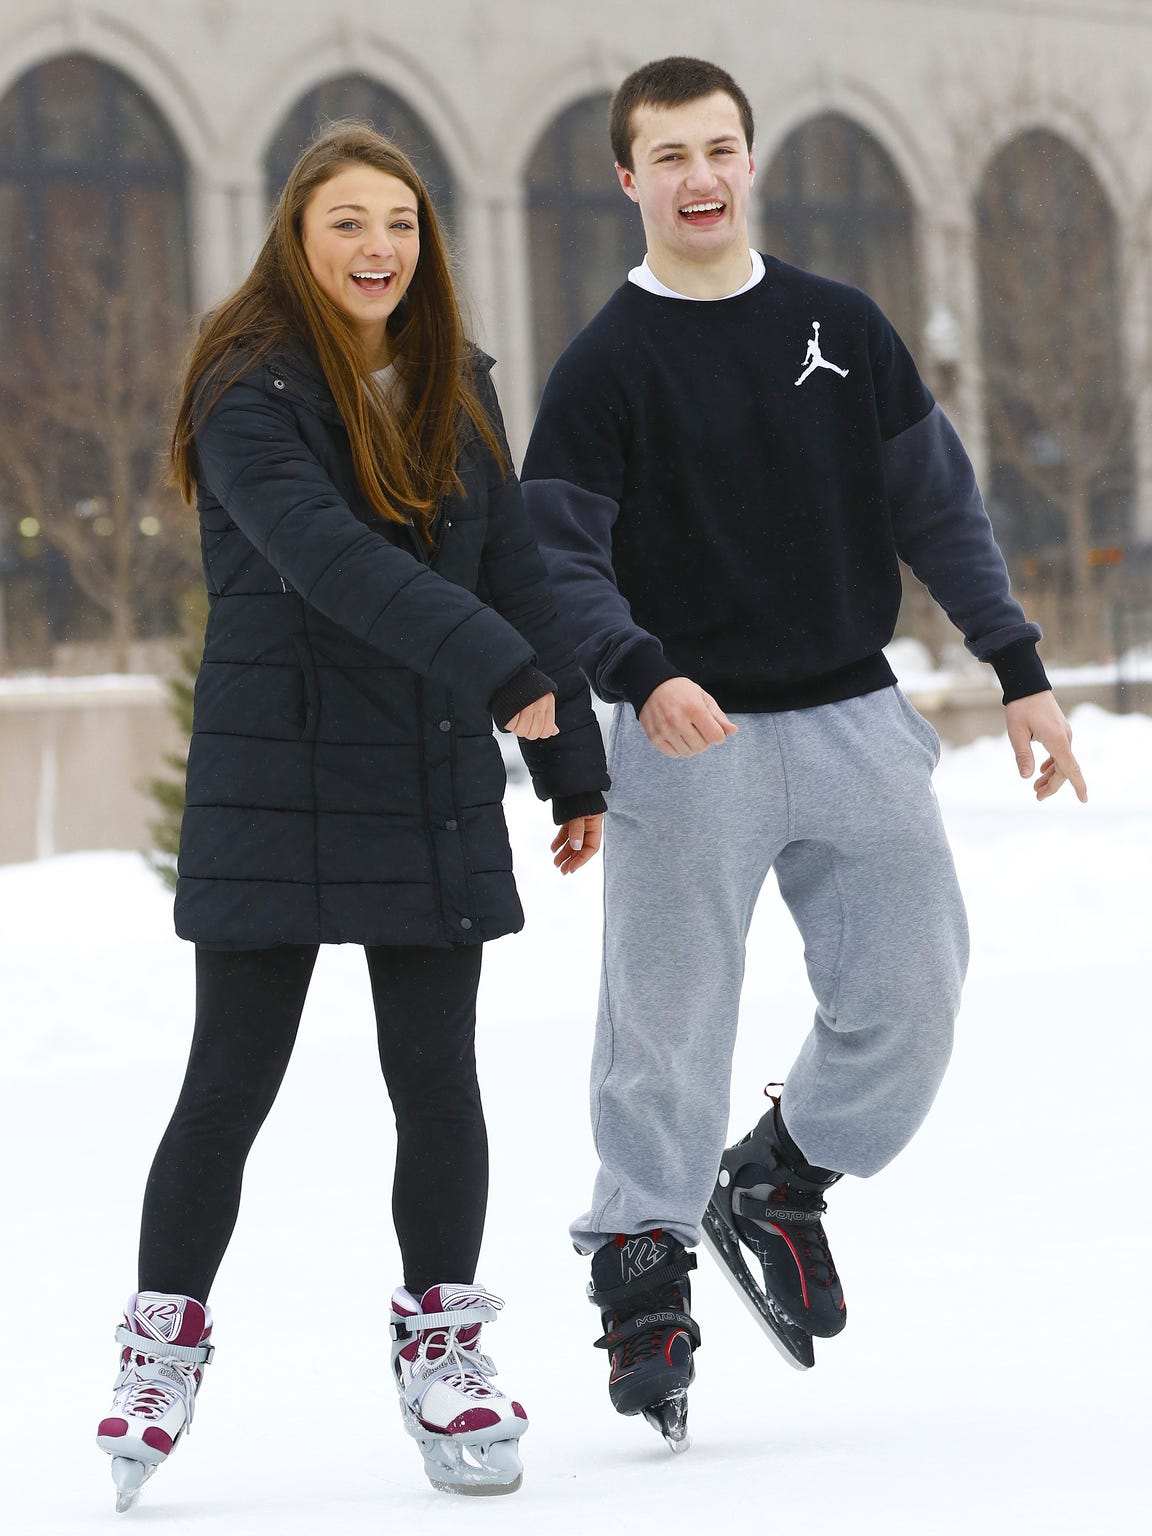 Shayna Raasch, 16, left, and Derek Reiche, 18, both of Weston, ice skate Monday afternoon at The 400 Block in downtown Wausau.